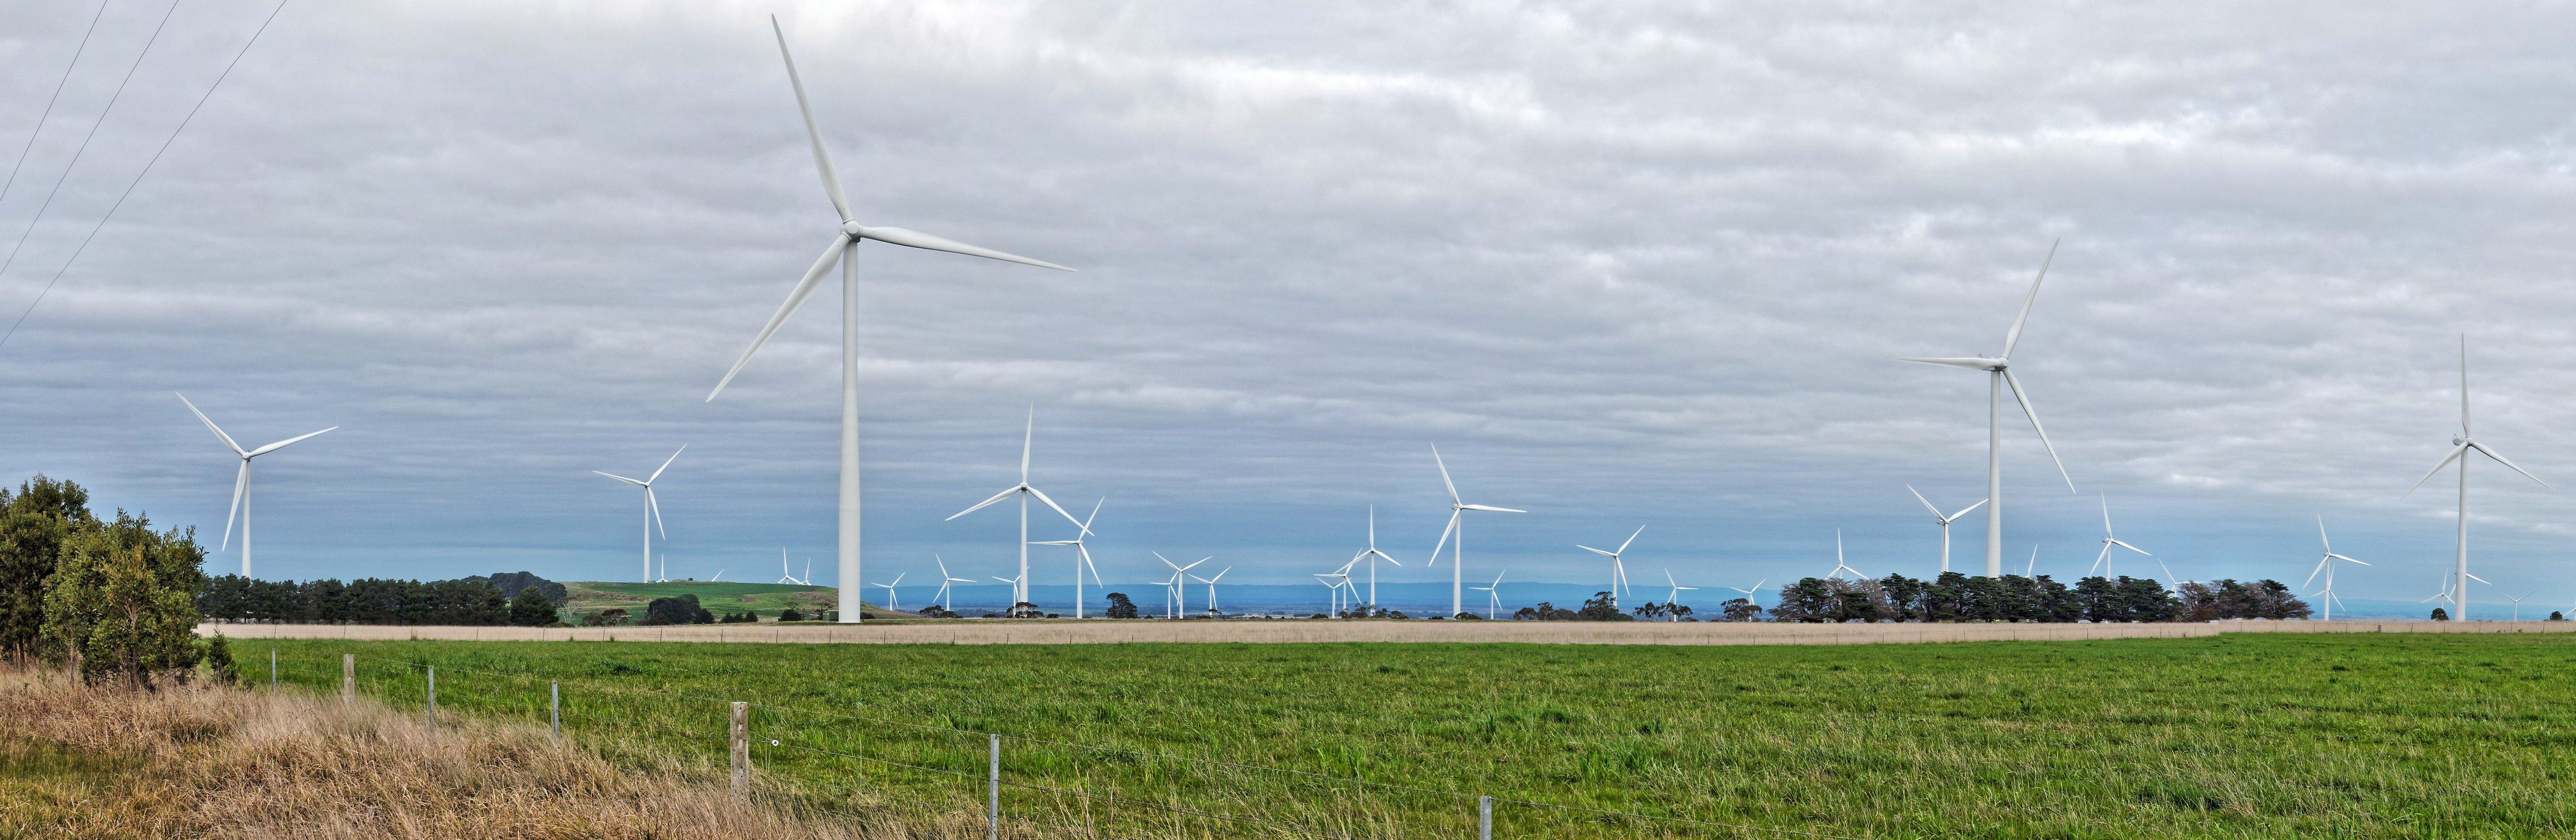 This should be Wind-farm-detail.jpeg.  Is it missing?